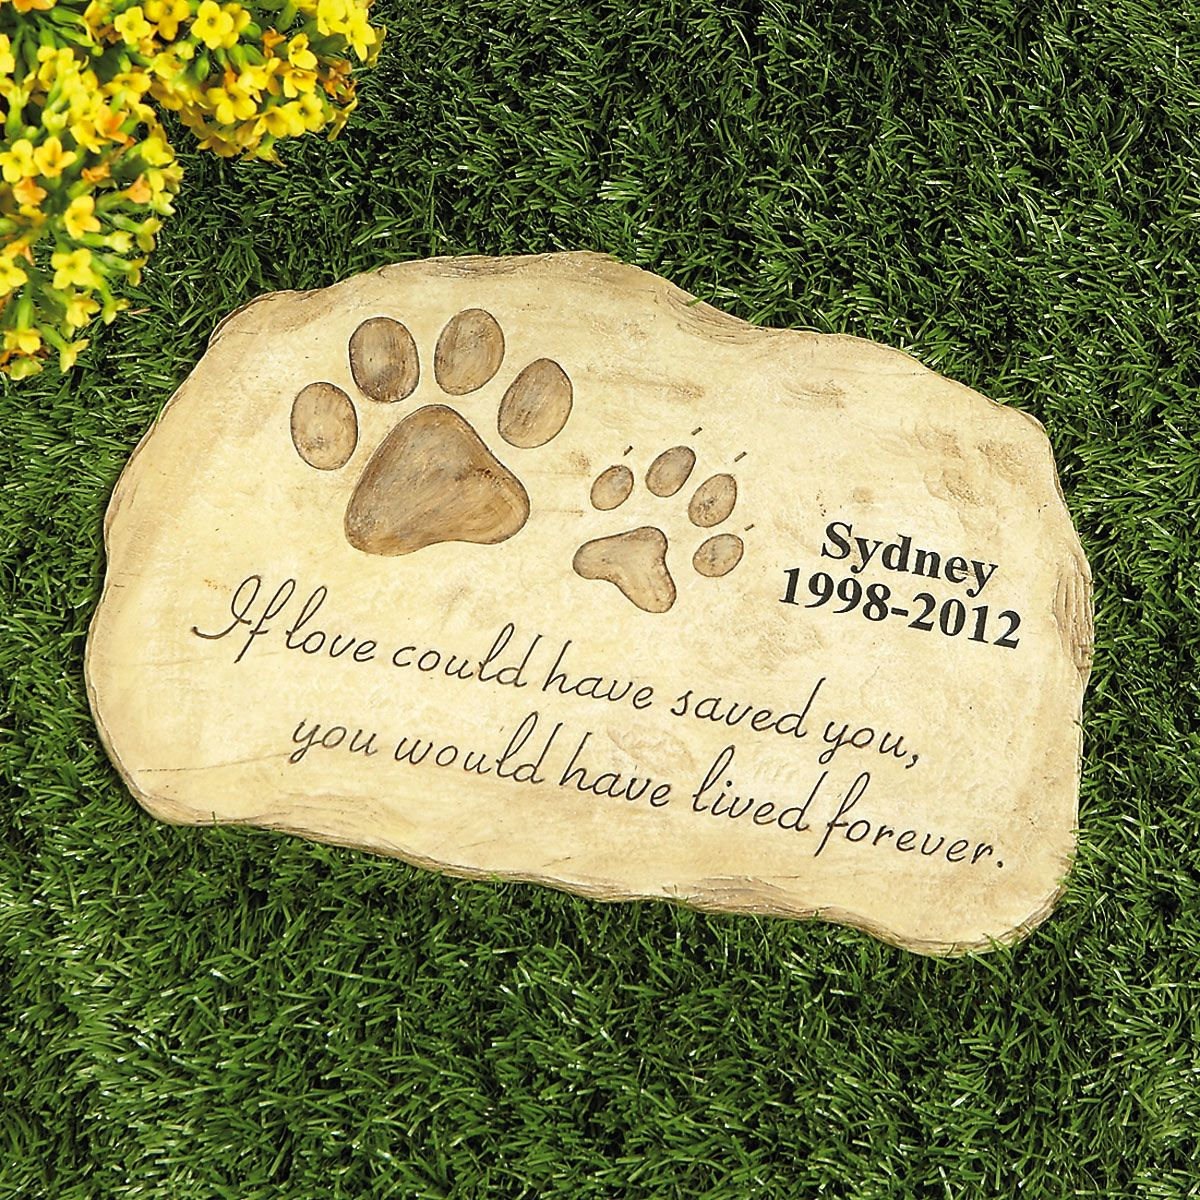 of ideas image garden stones sevilla personalized stone memorial pet encuentro comic